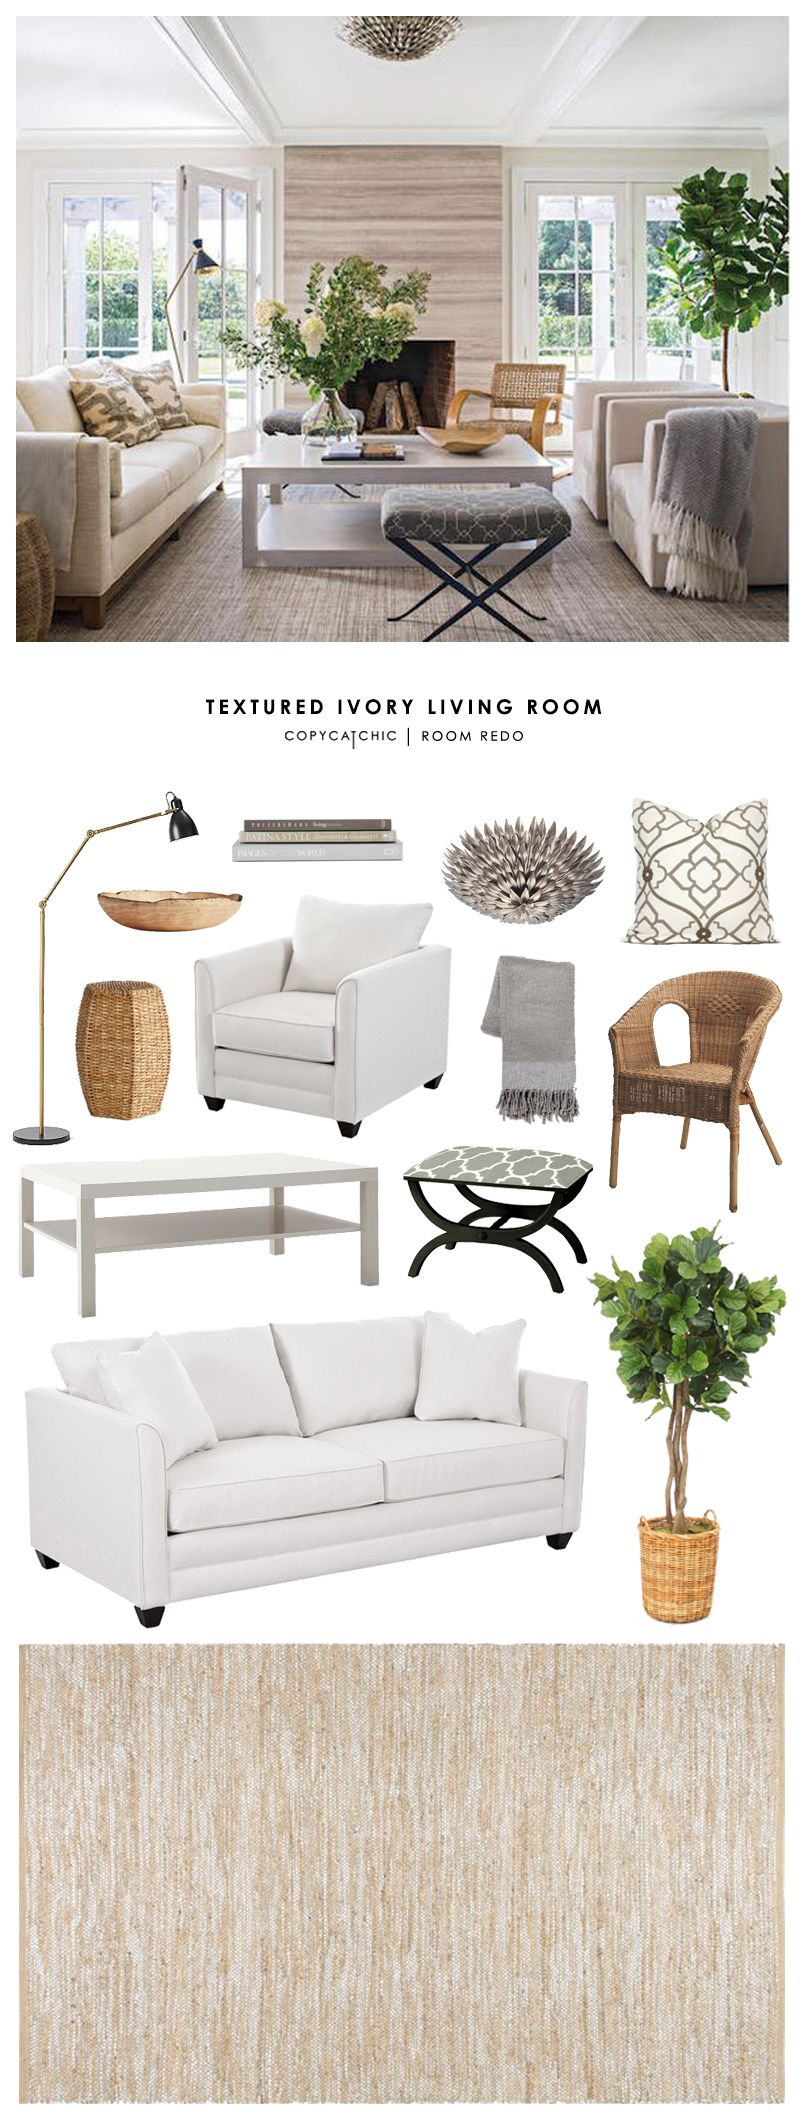 Copy Cat Chic Room Redo Textured Ivory Living Room Furniture